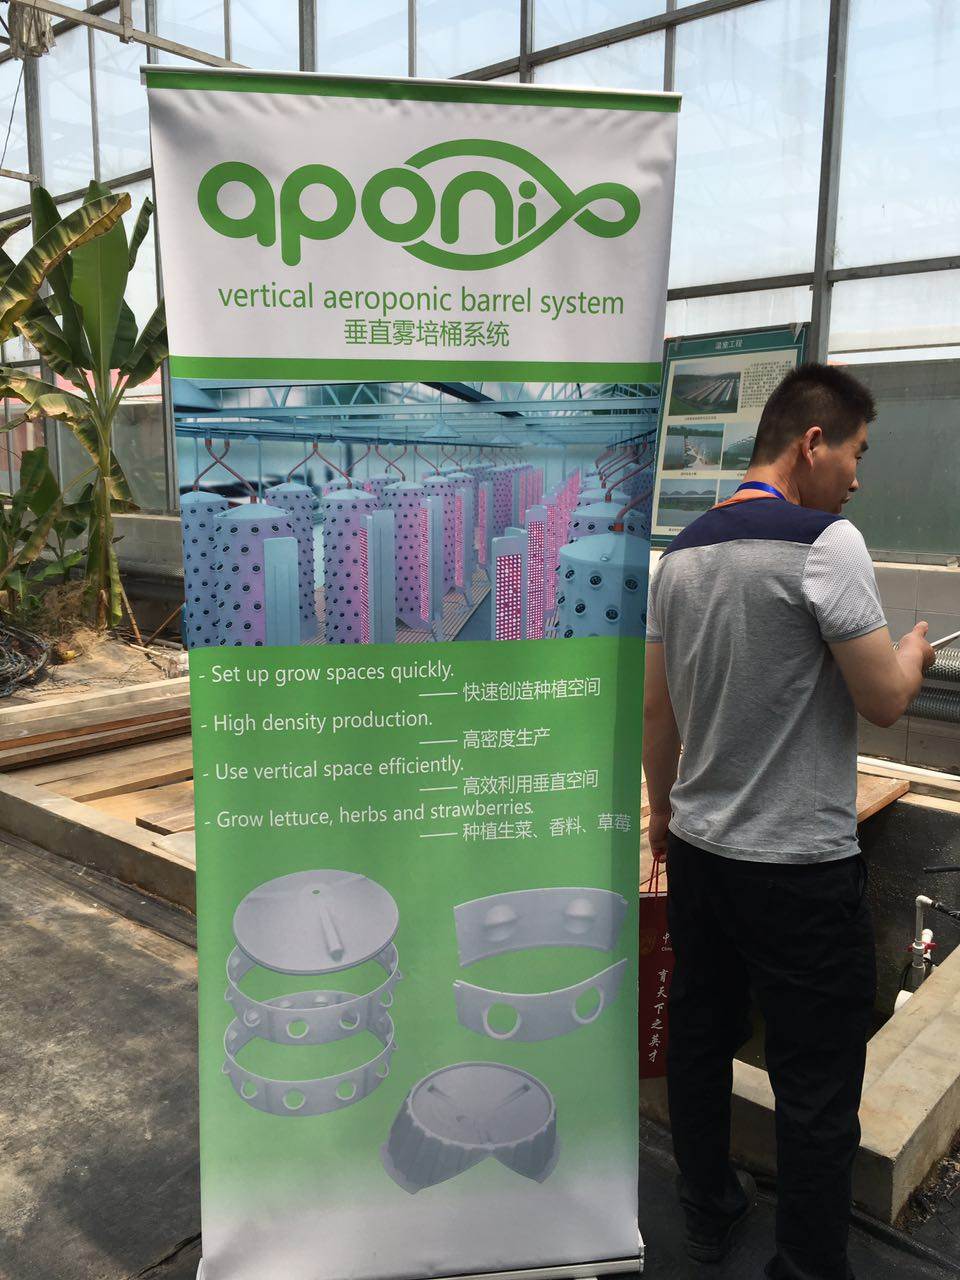 Aponix Vertical Barrels shown in Tongzhou Park, Beijing